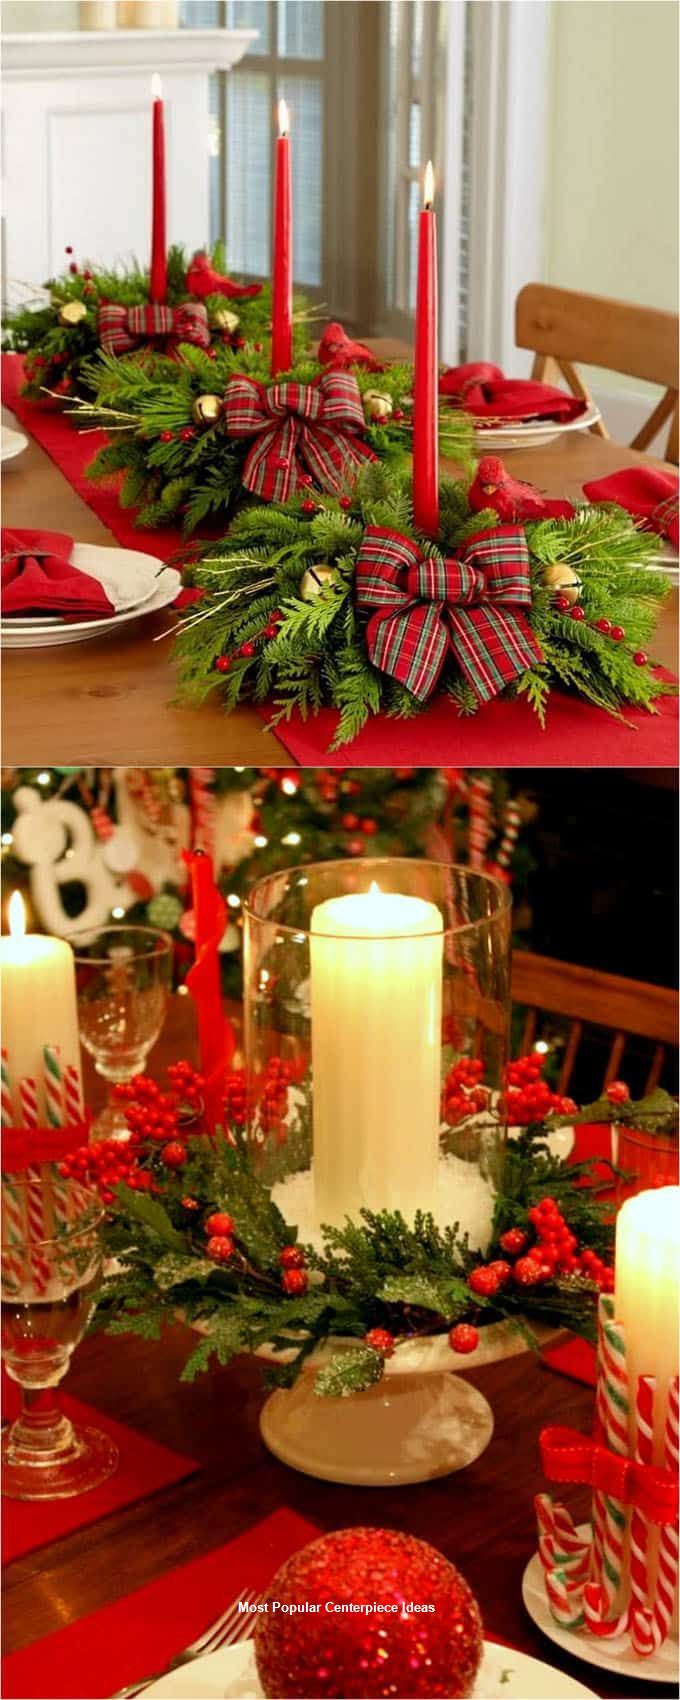 23 Christmas Centerpiece Ideas That Will Raise Everybodys Eyebrows